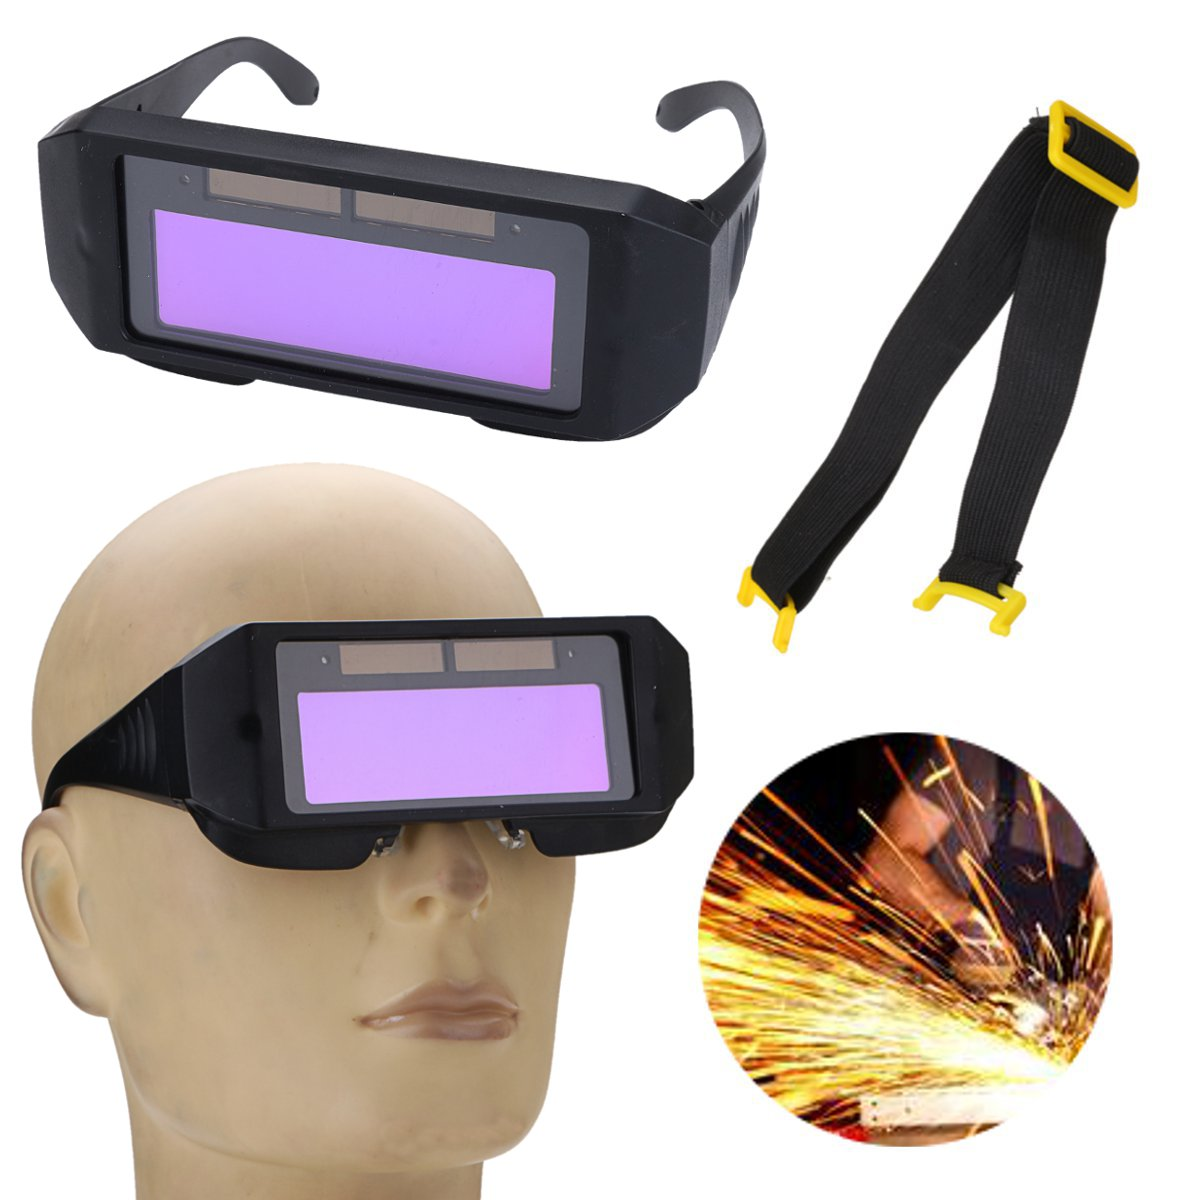 Solar Powered Auto Darkening Welding Helmet Goggle Mask Two-way Eye Glasses Adjustable Black